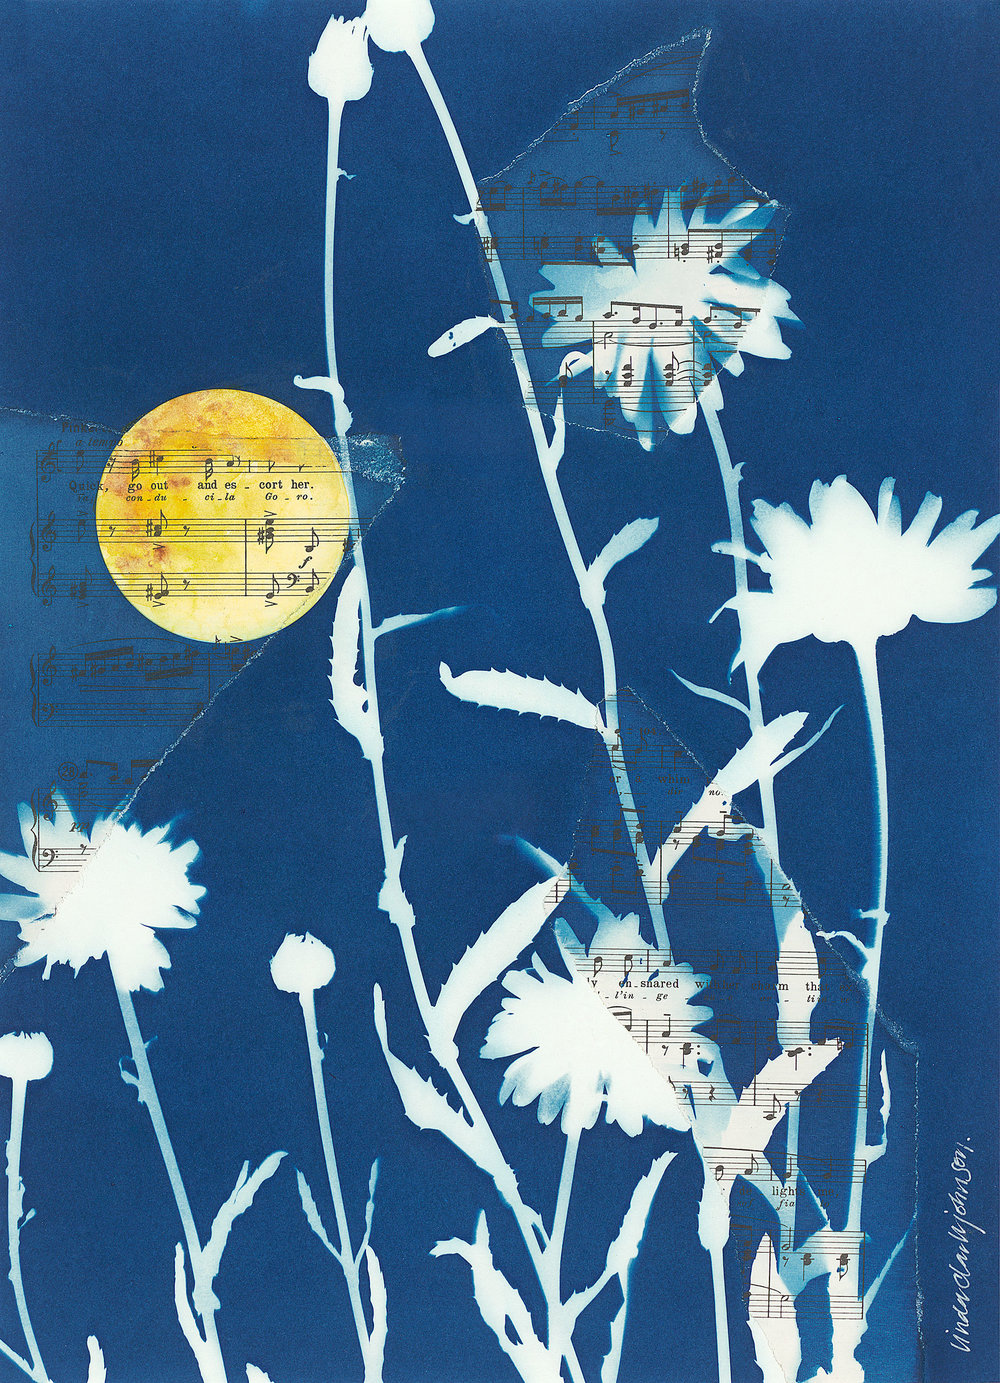 Paul's Moonlit Garden | 11 x 15 | cyanotype and watercolor